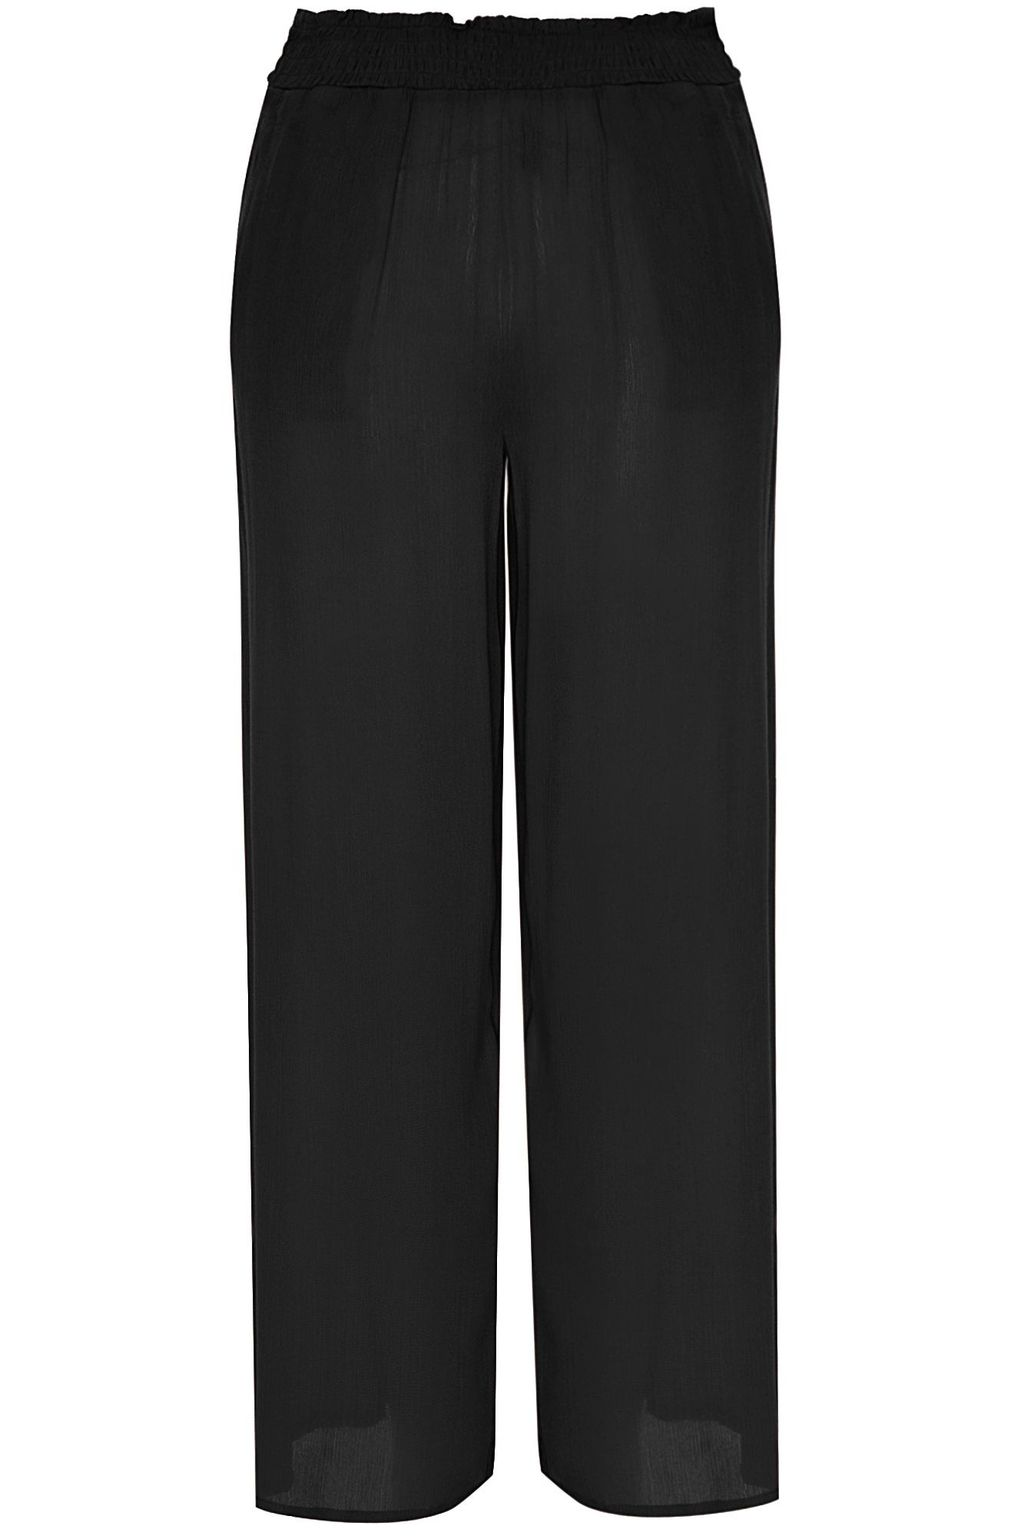 Wide Leg Trousers, Black - length: standard; pattern: plain; waist detail: elasticated waist; waist: mid/regular rise; predominant colour: black; occasions: evening; fibres: polyester/polyamide - 100%; fit: wide leg; pattern type: fabric; texture group: woven light midweight; style: standard; pattern size: standard (bottom); season: s/s 2016; wardrobe: event